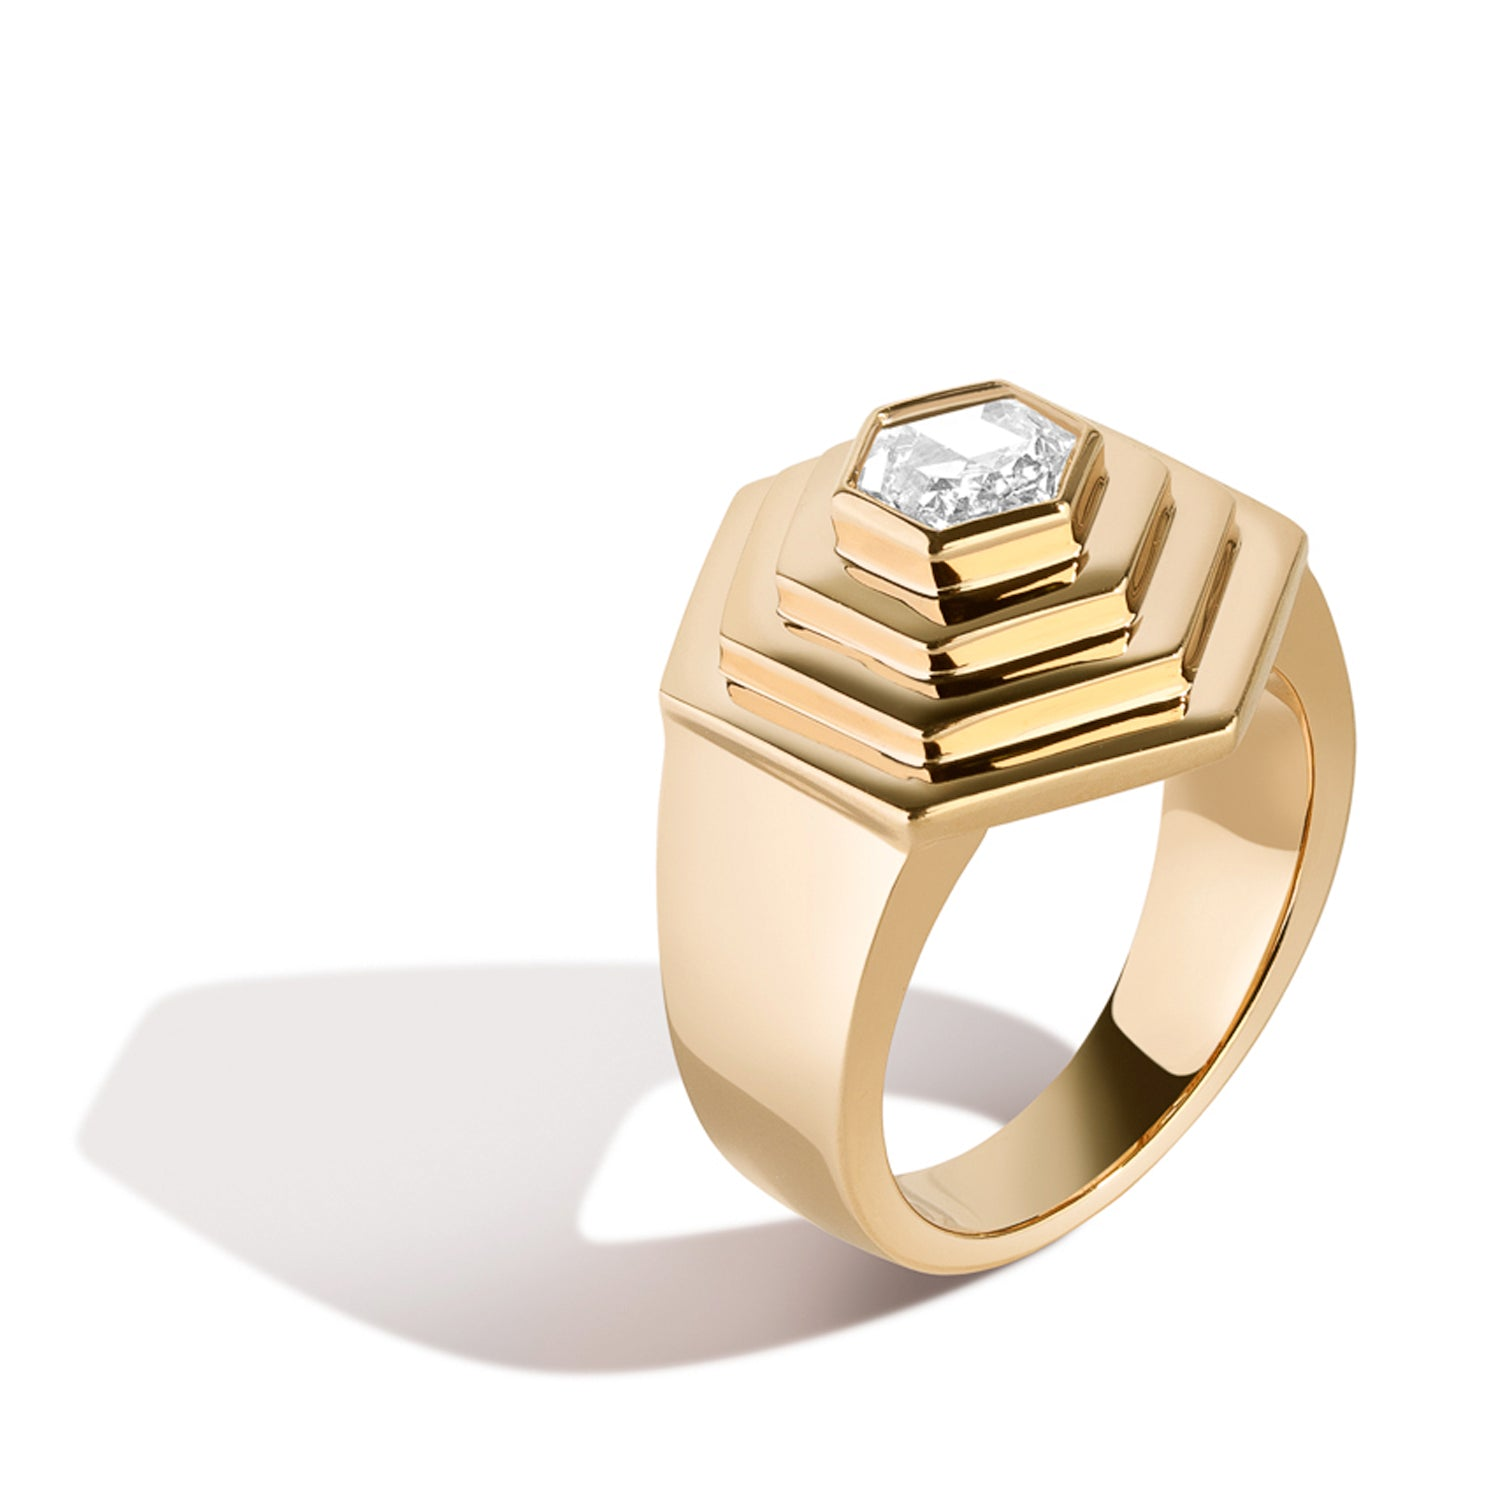 hex step ring with above ground hexagonal rose cut diamond in 14k yellow gold